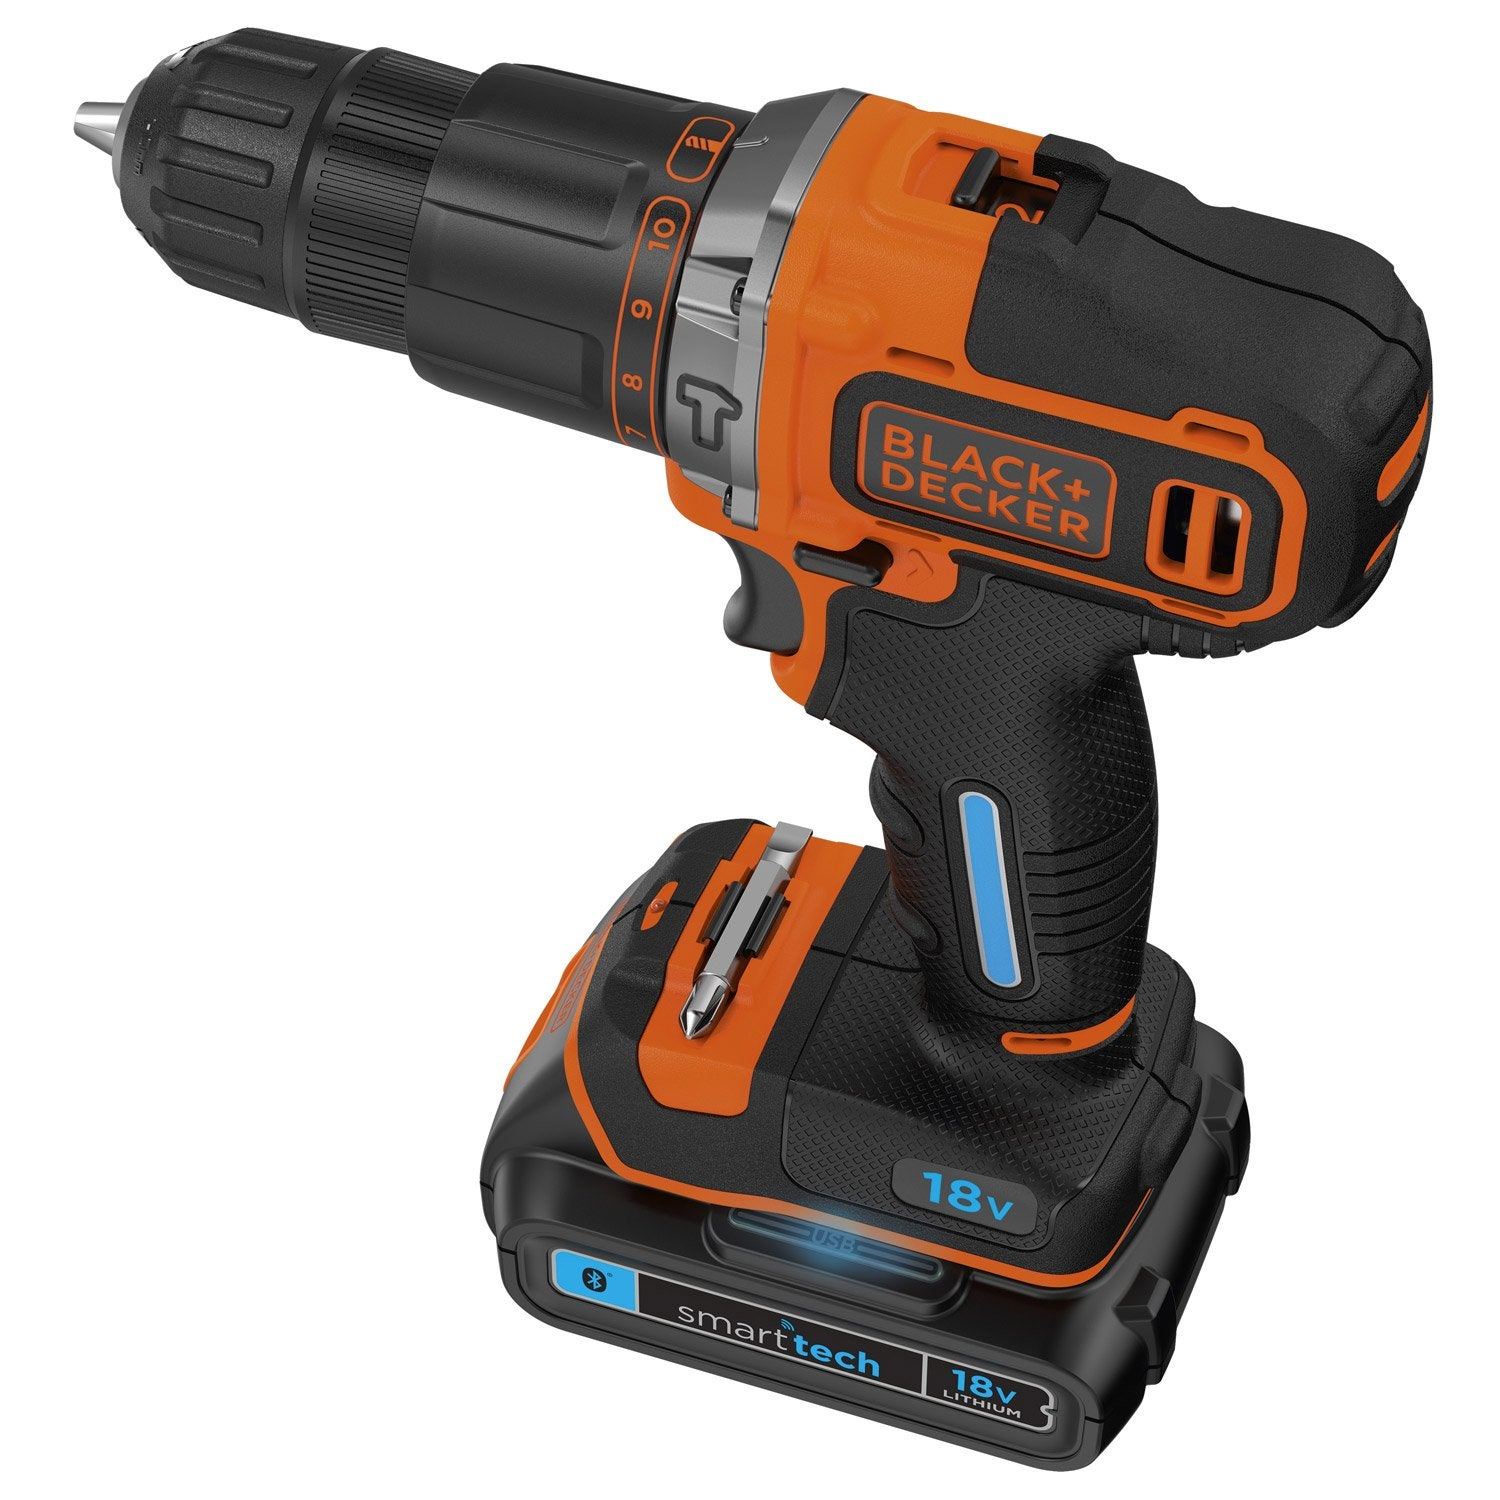 Perceuse black et decker sans fil - Perceuse black et decker 18v ...